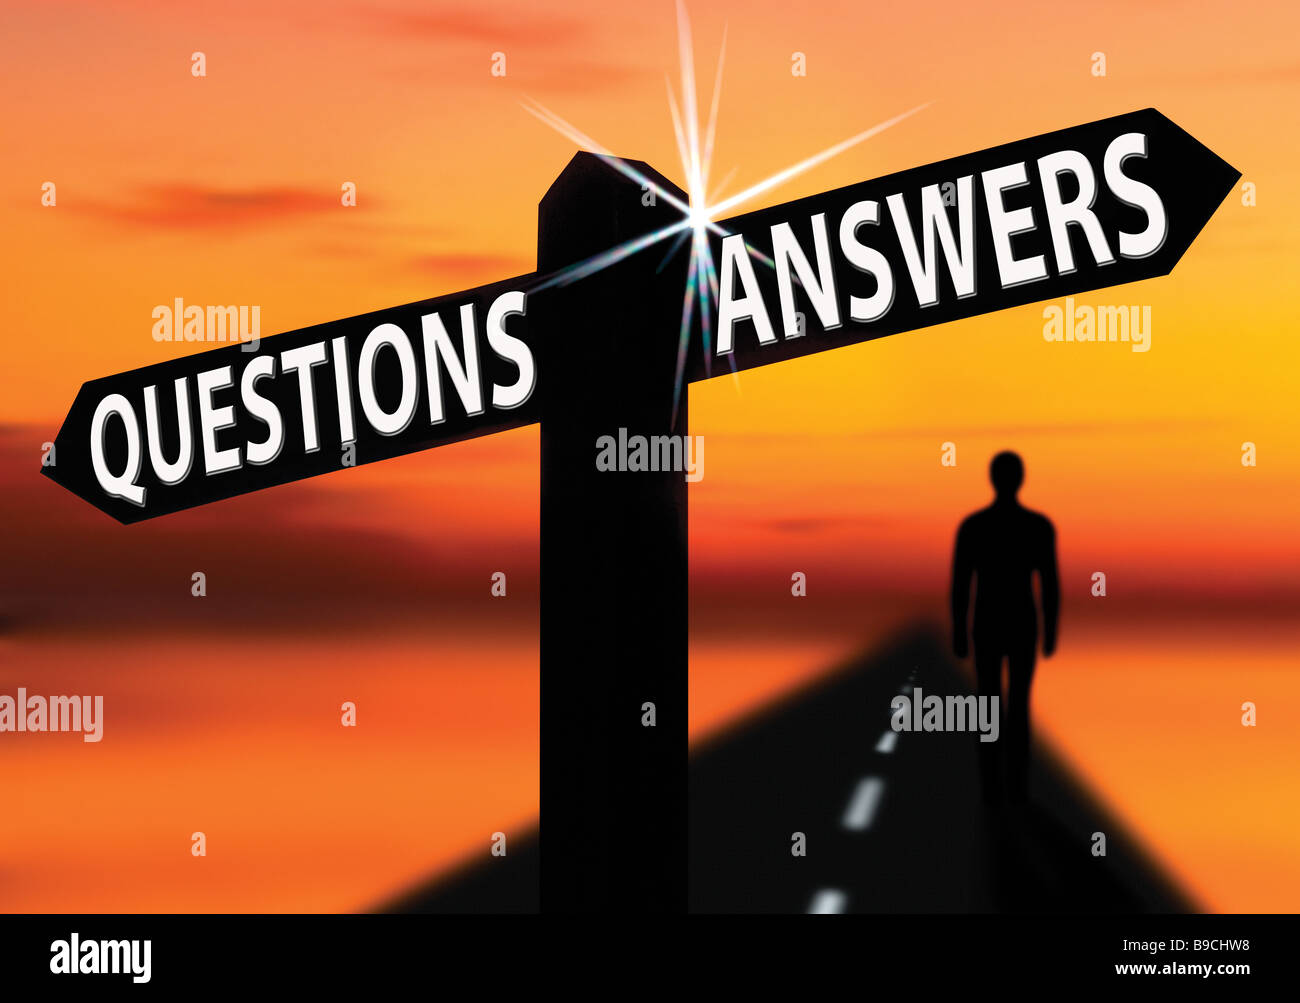 questions and answers sign with man - Stock Image